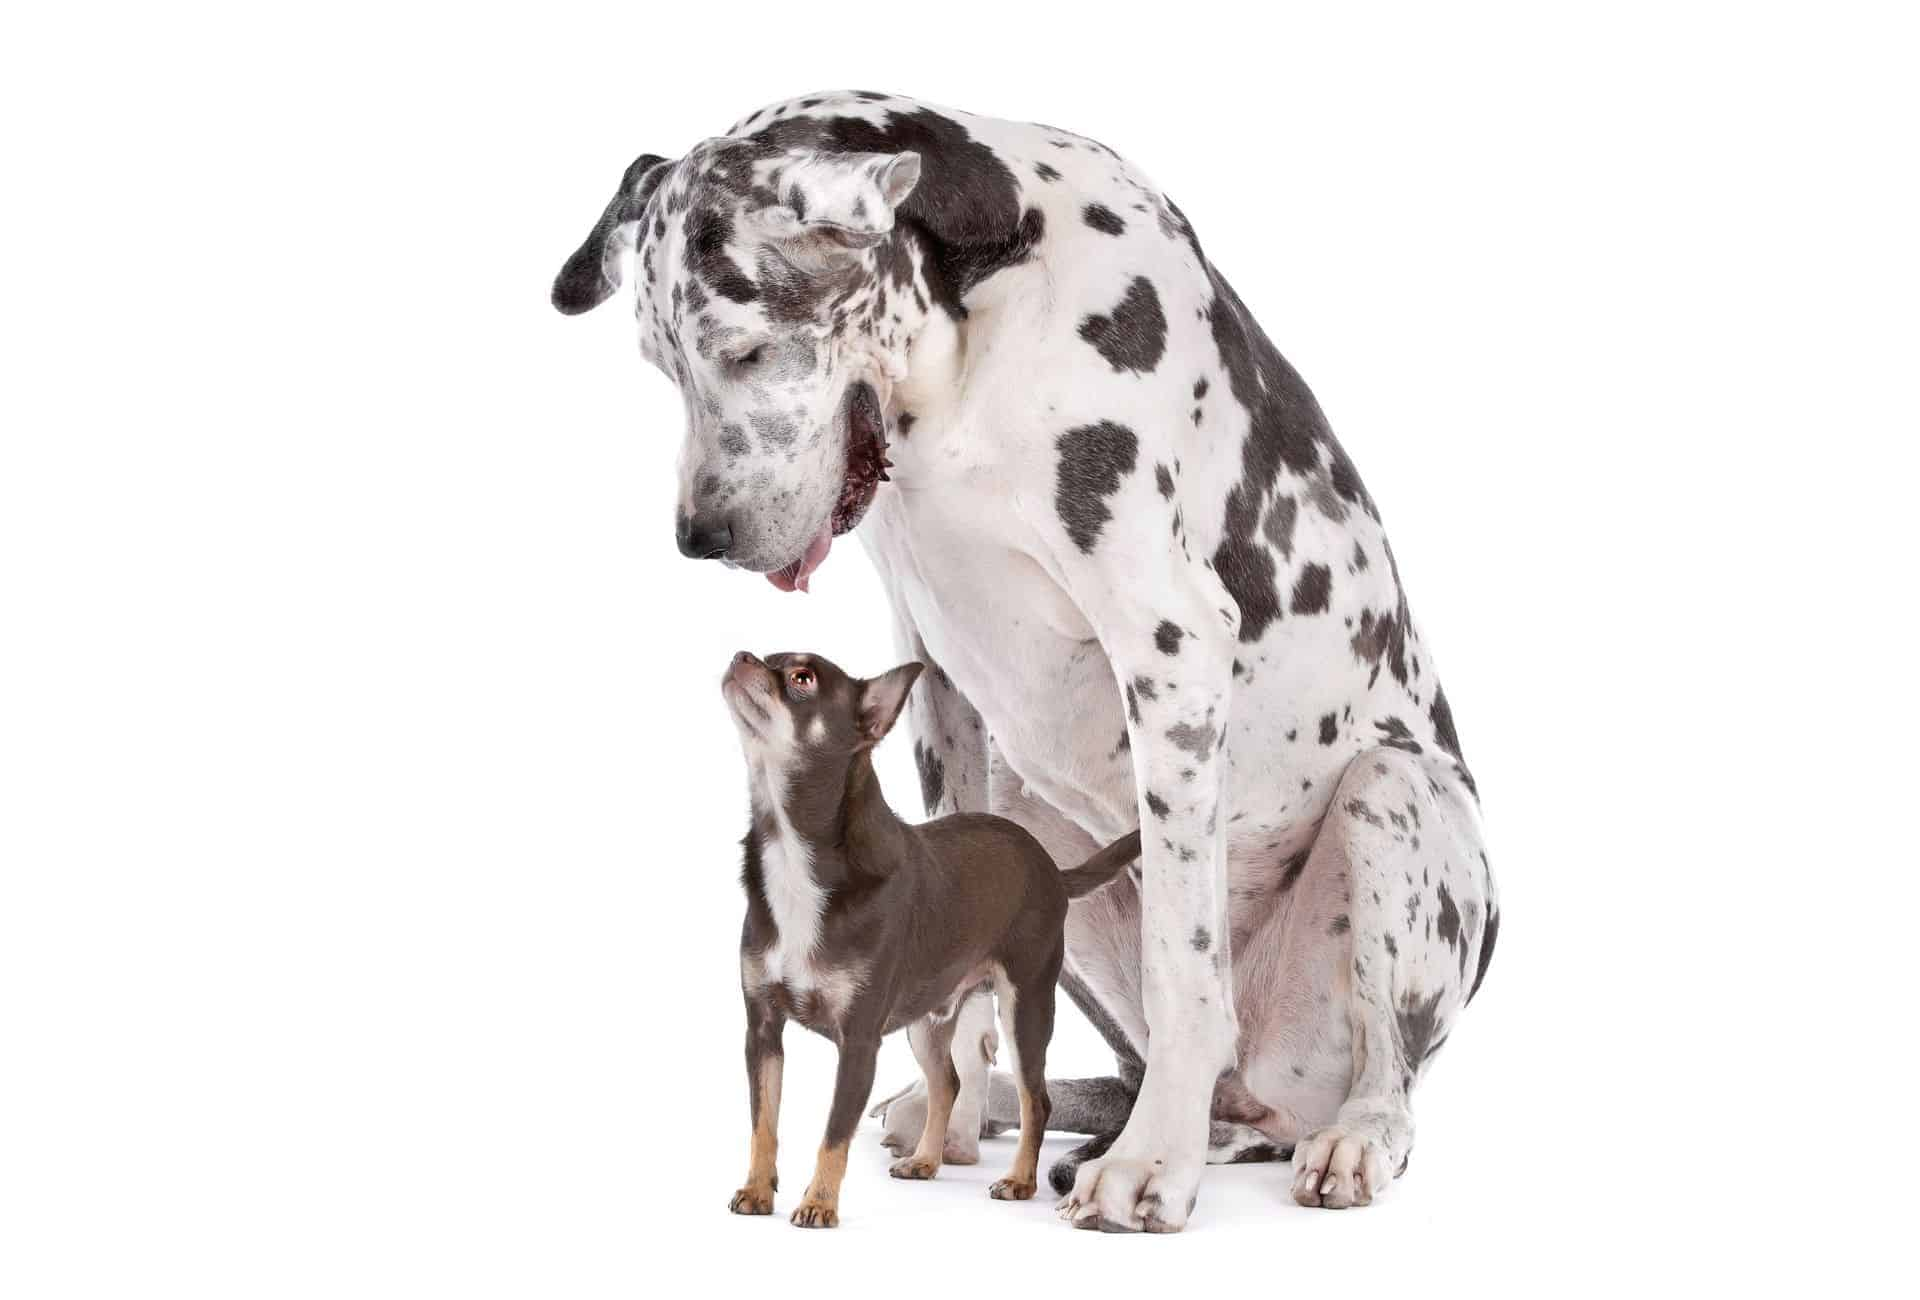 Great Dane looks down on Chihuahua, a smaller dog breed that often has a longer lifespan compared to large breeds.